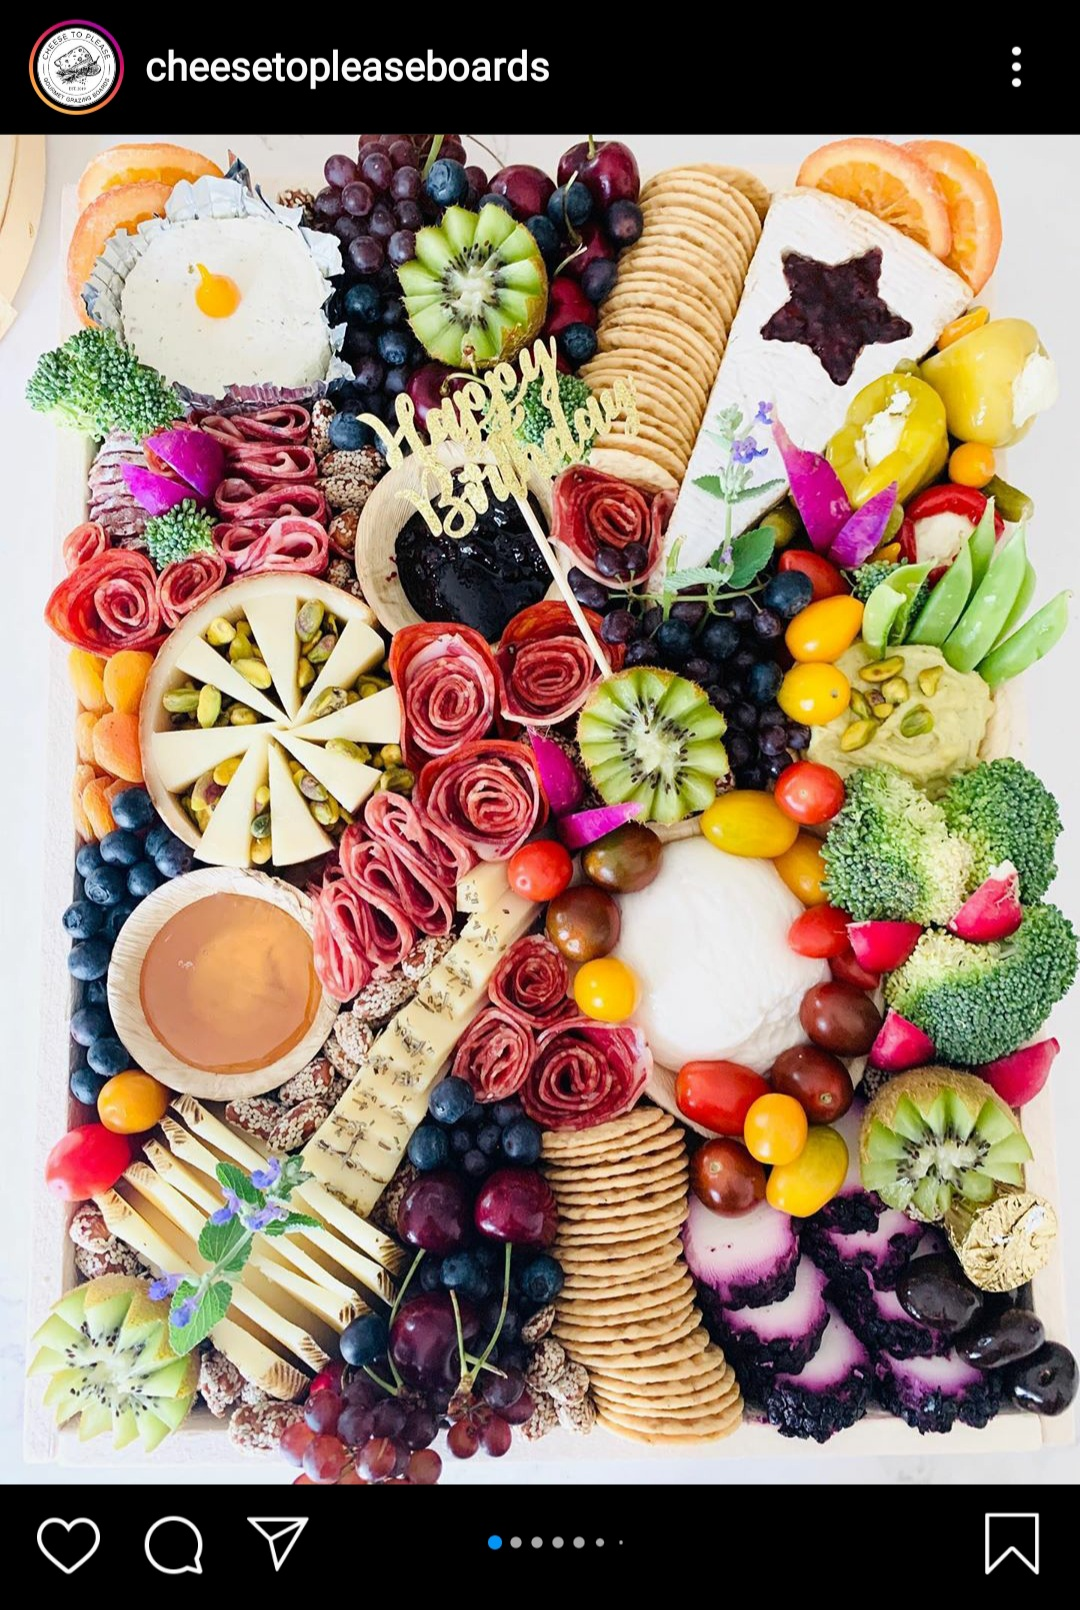 Artistic Birthday Celebration Board by @cheesetopleaseboards